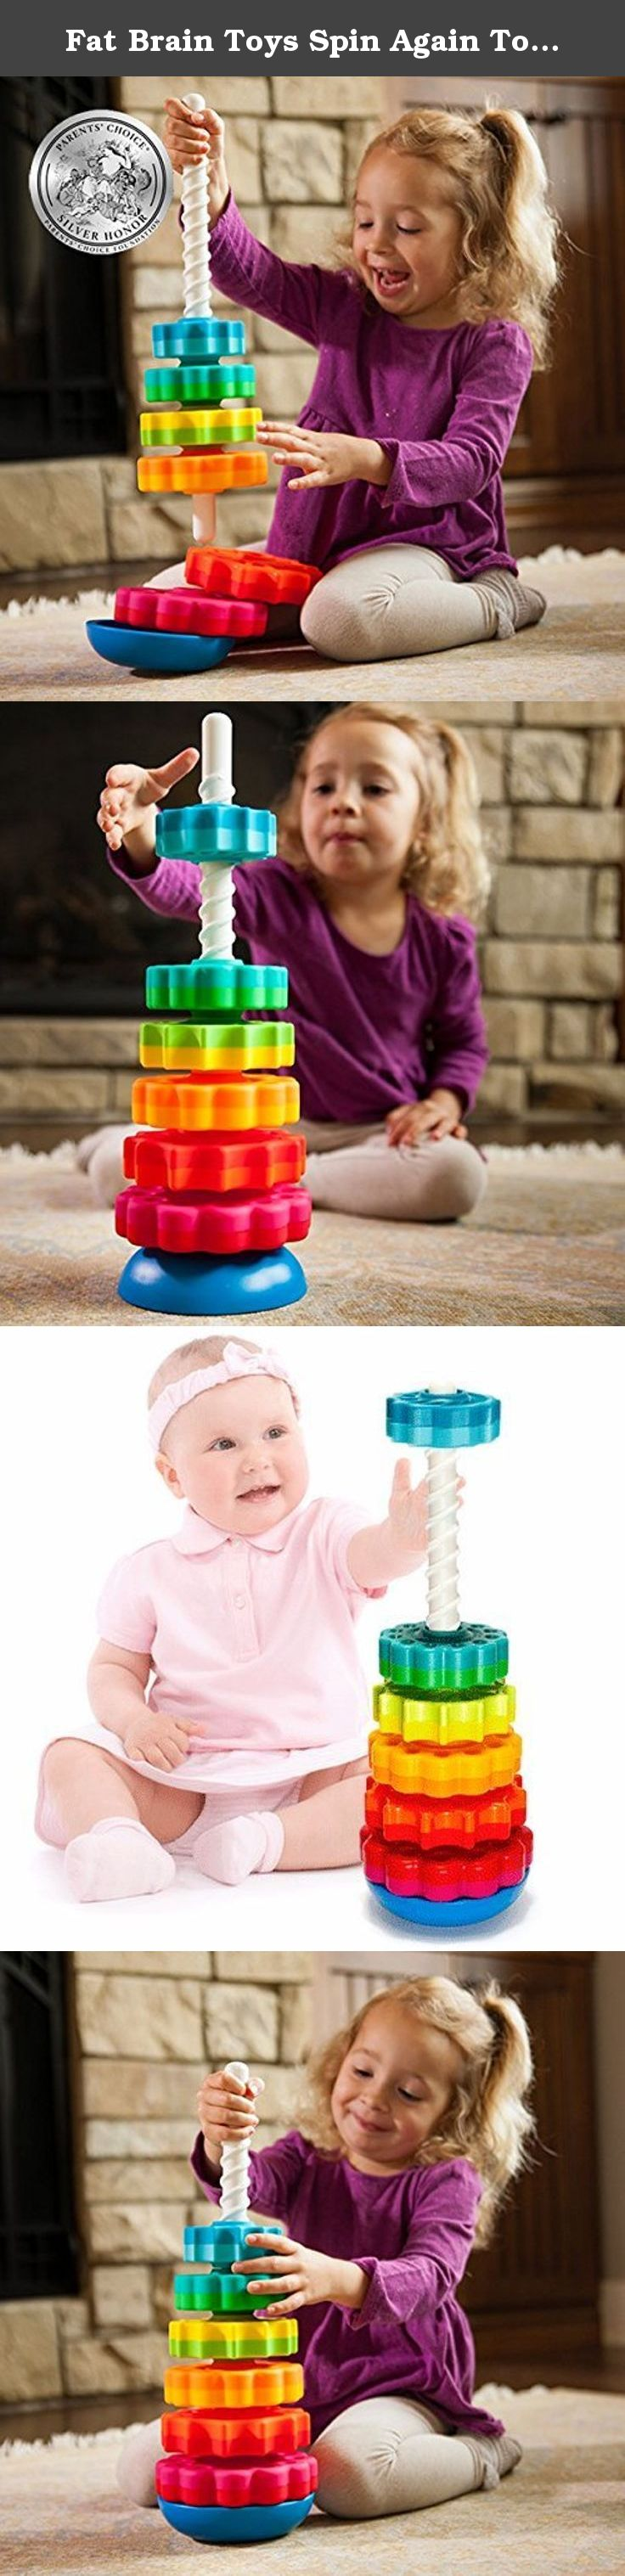 Fat Brain Toys Spin Again Toy Baby It s a stacking toy with a